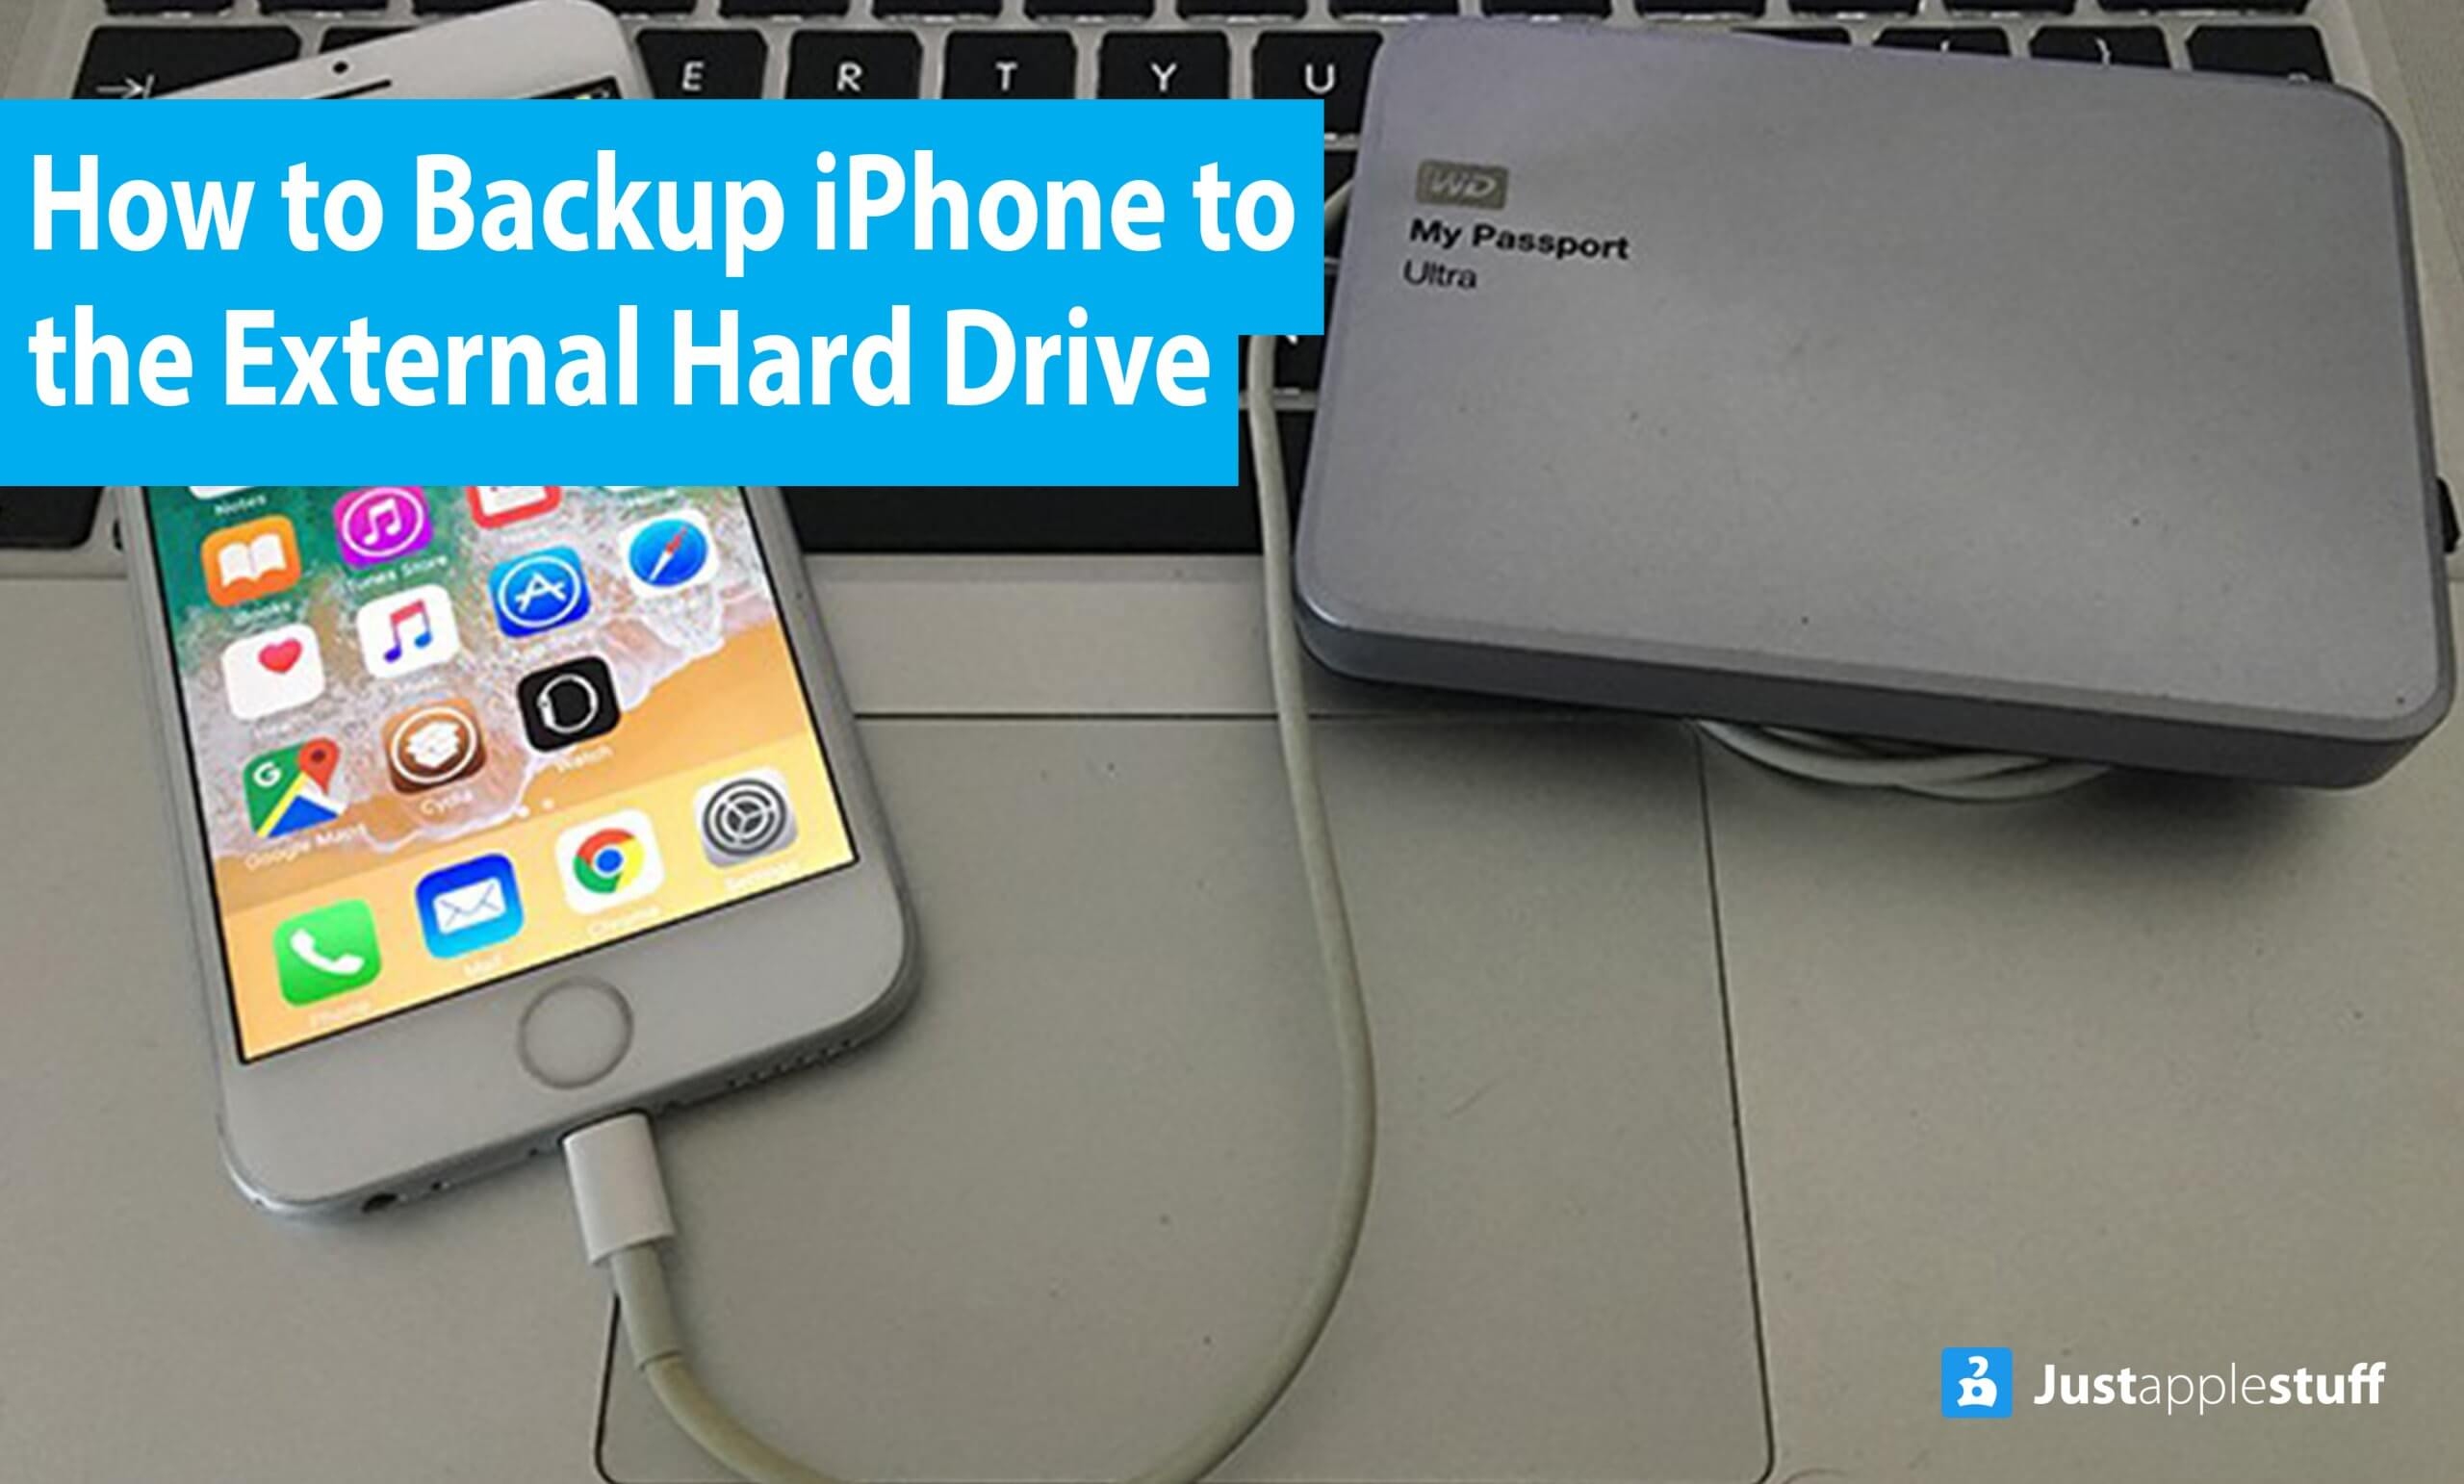 How to backup iPhone to the external hard drive